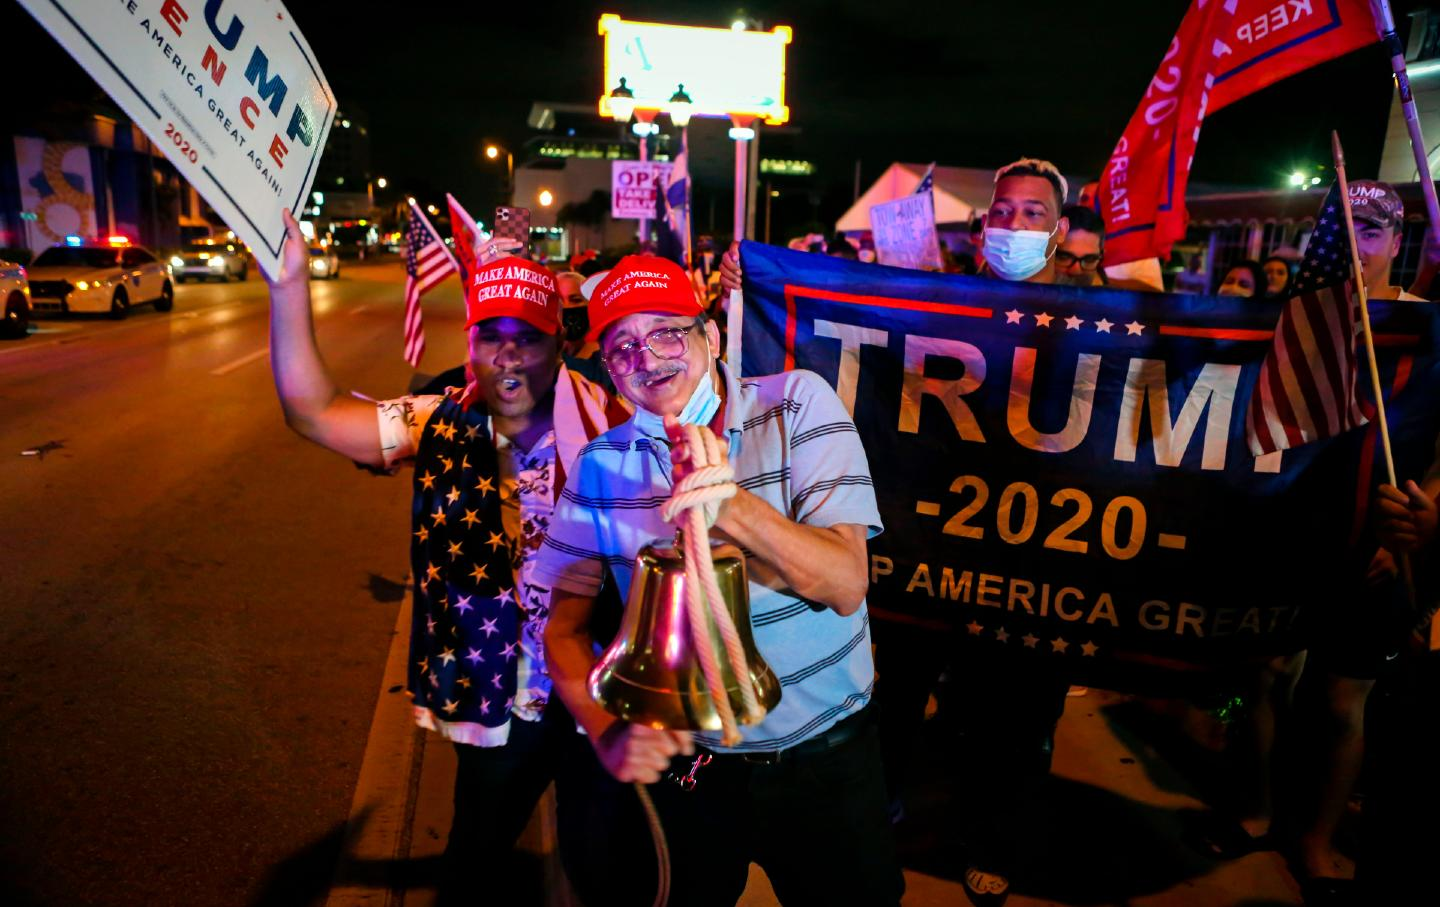 Two supporters in red MAGA hats pose for the camera, behind them is a supporter holding a Trump 2020 sign.